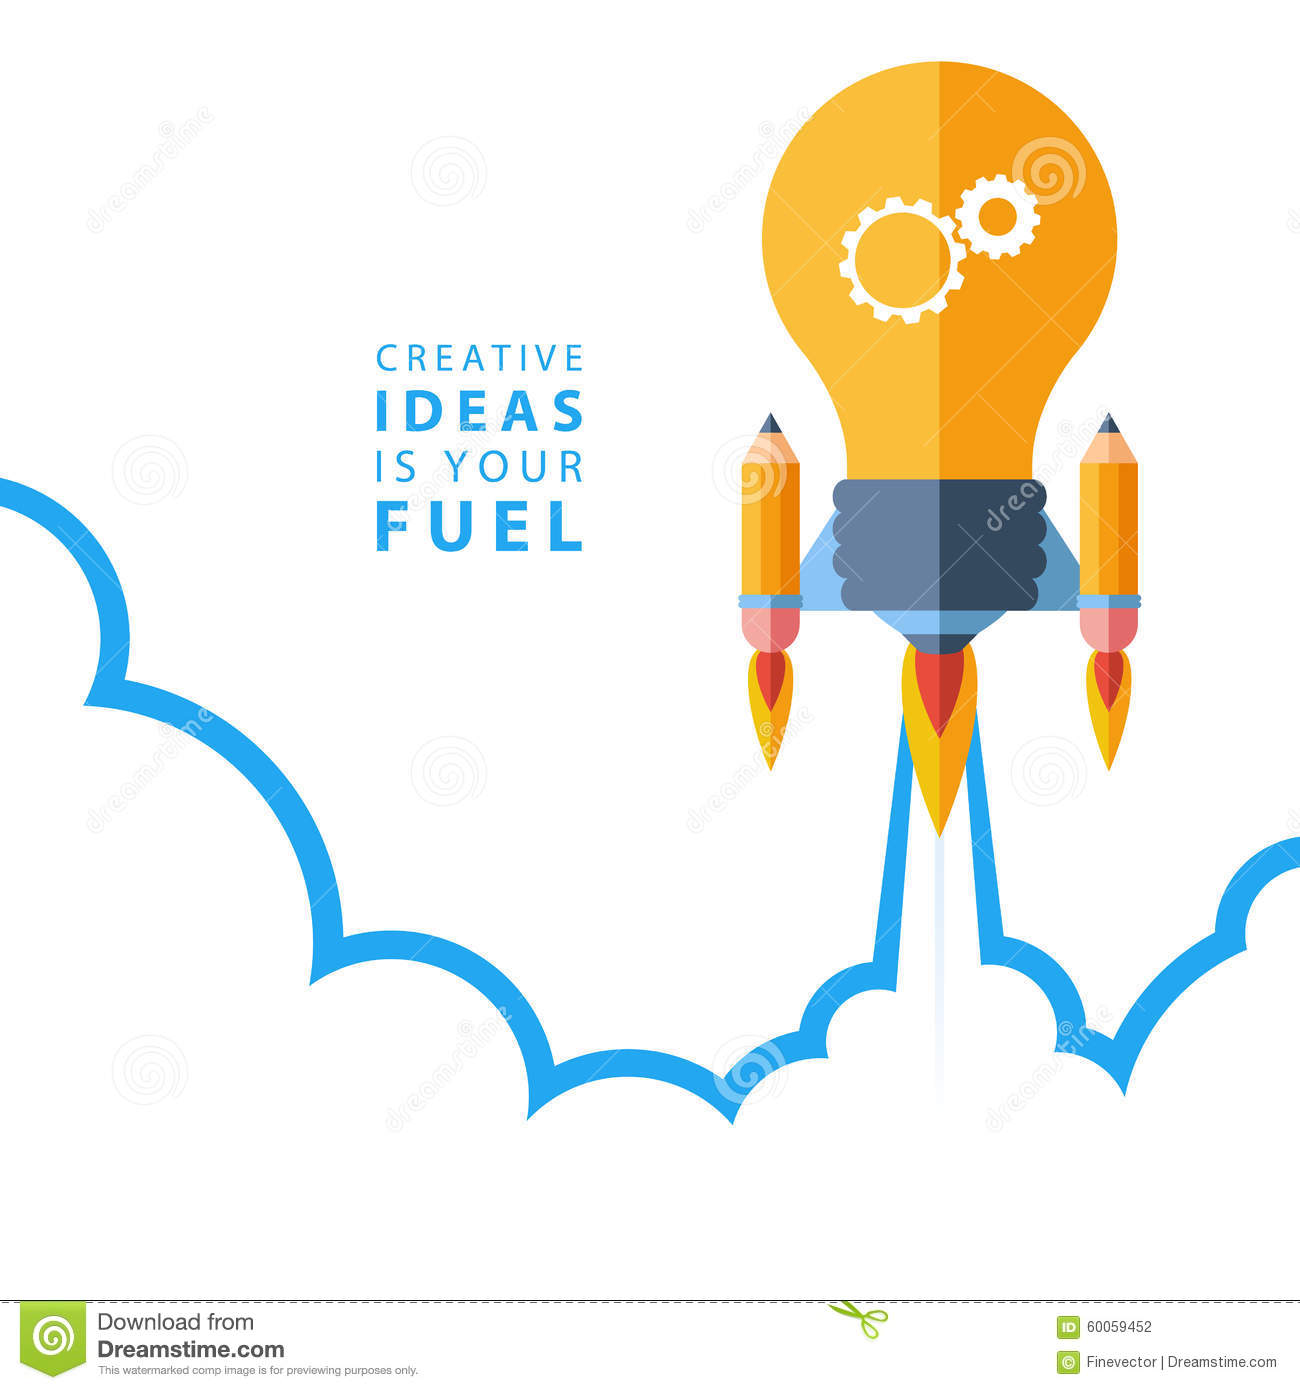 Creative Ideas Is Your Fuel. Flat Design Colorful Vector